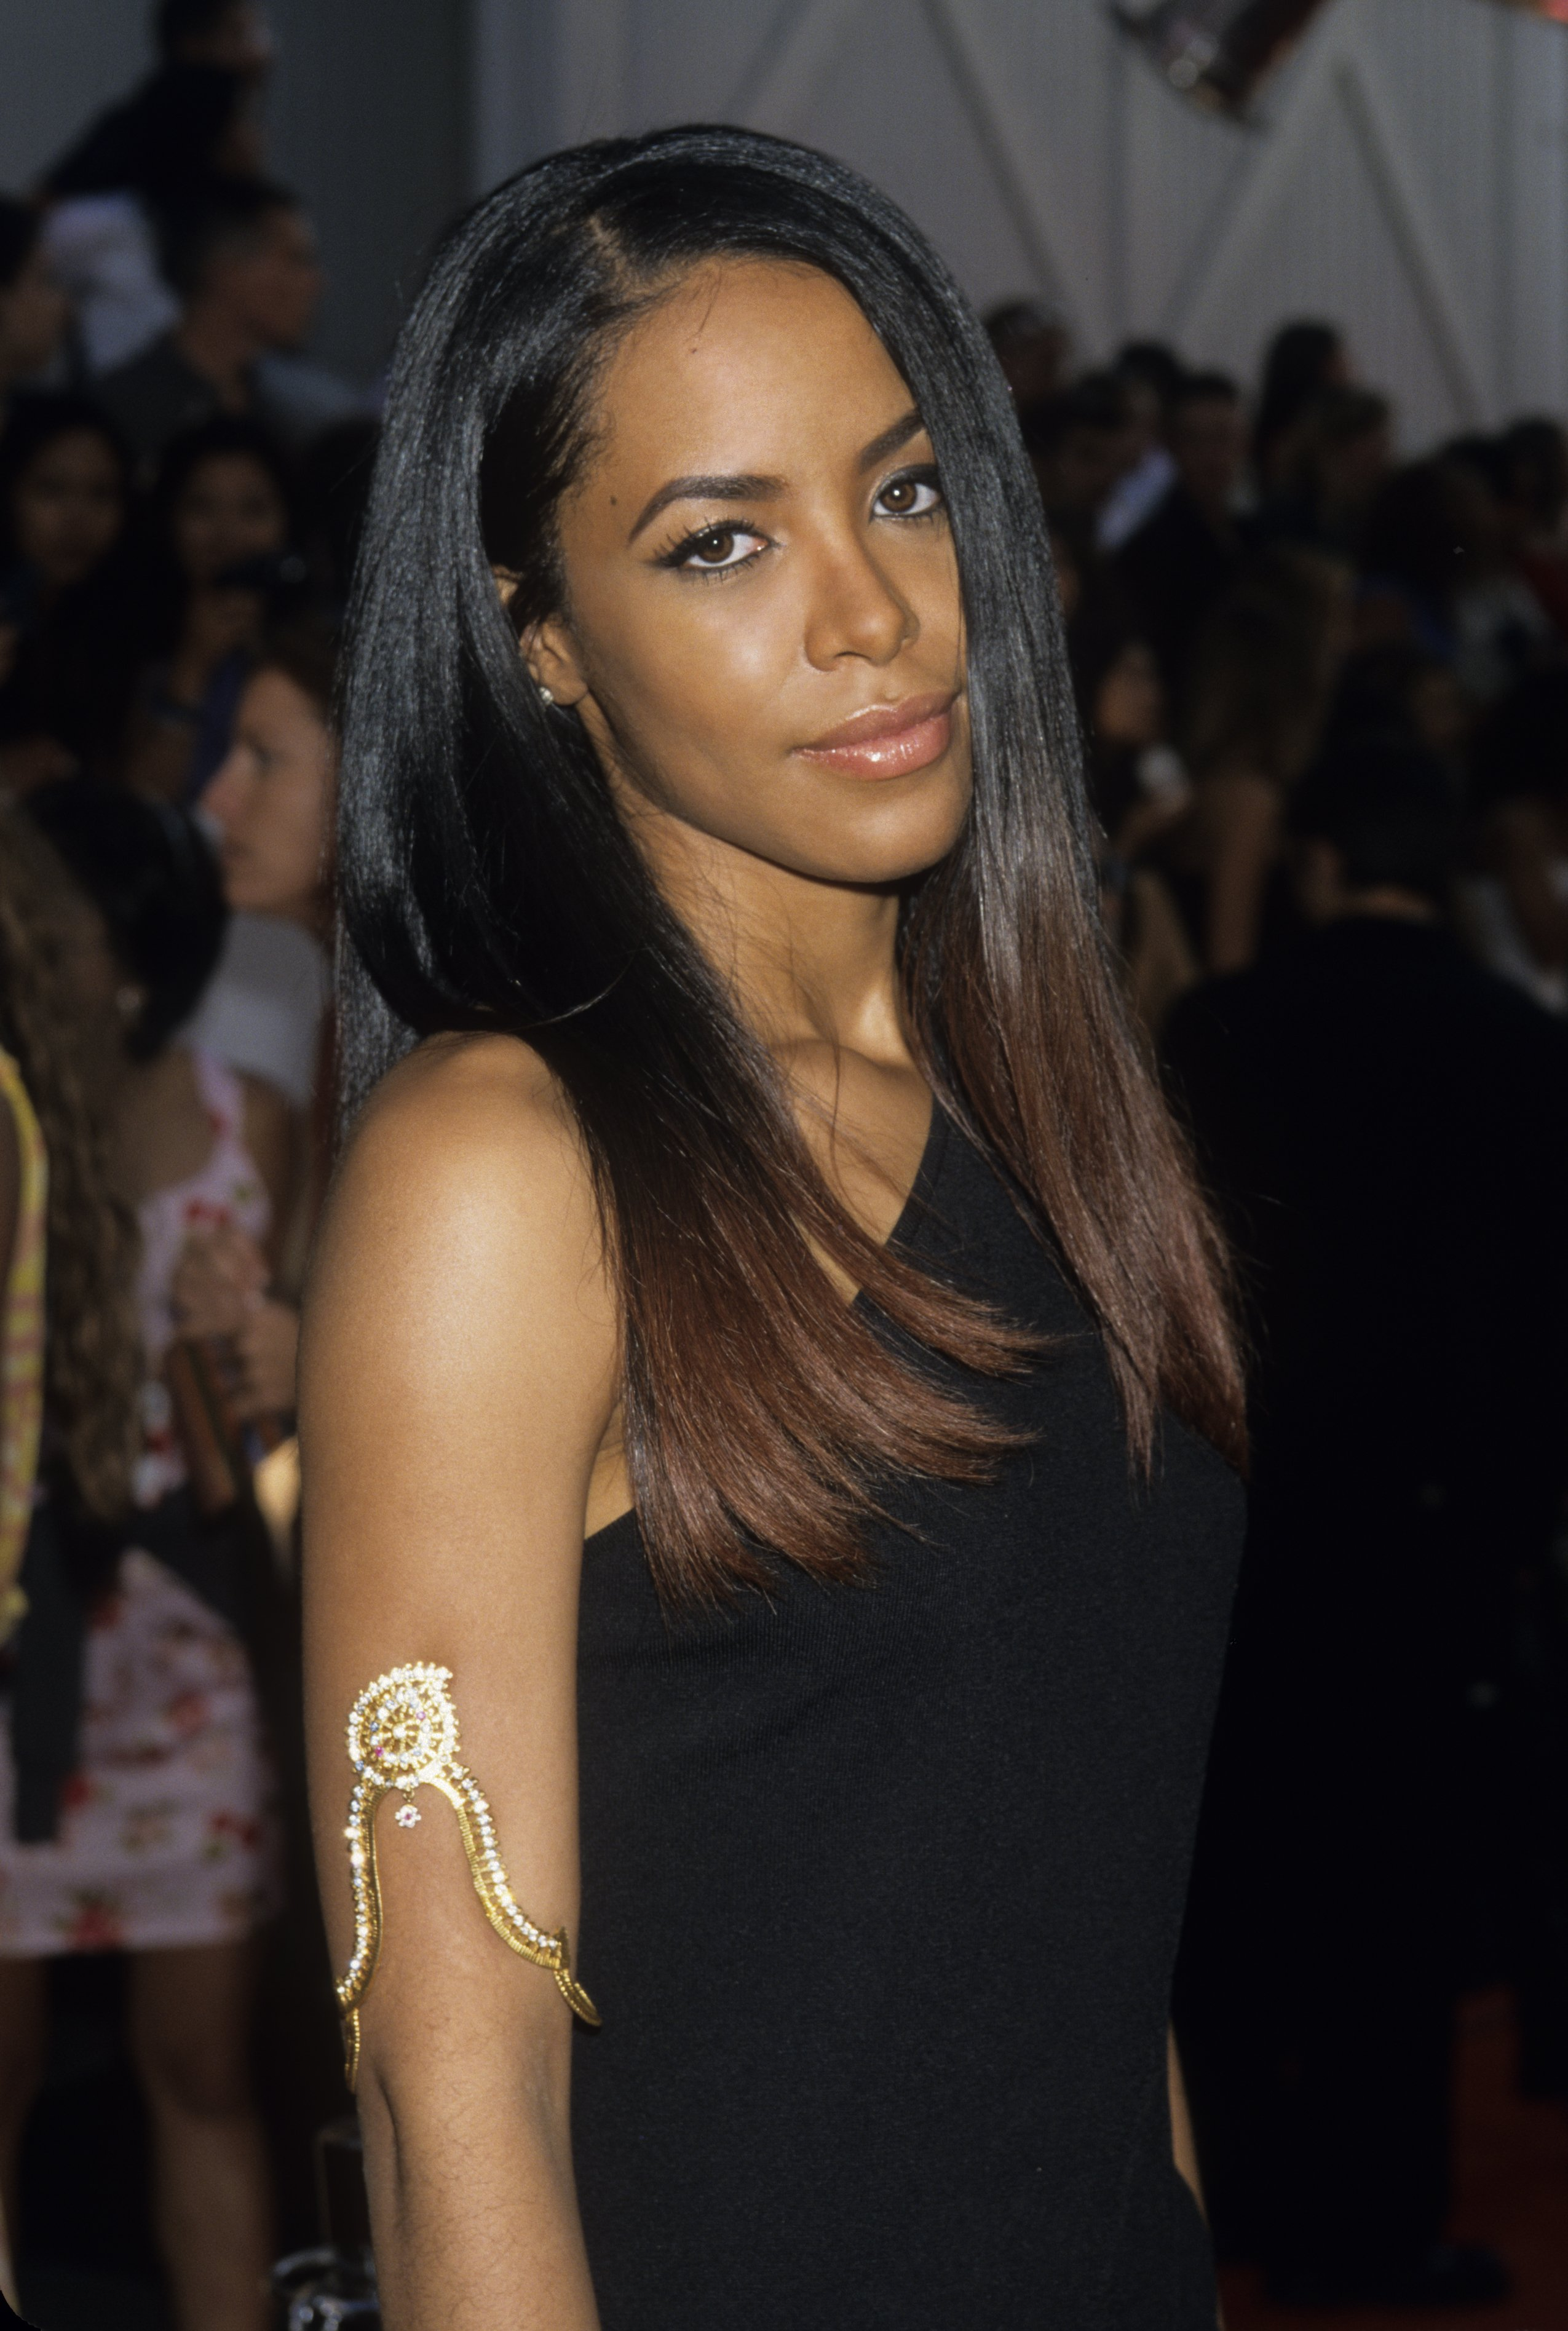 Aaliyah attends the 2000 MTV Movie Awards at Sony Studios on June 3, 2000 in Culver City, California. | Photo : Getty Images